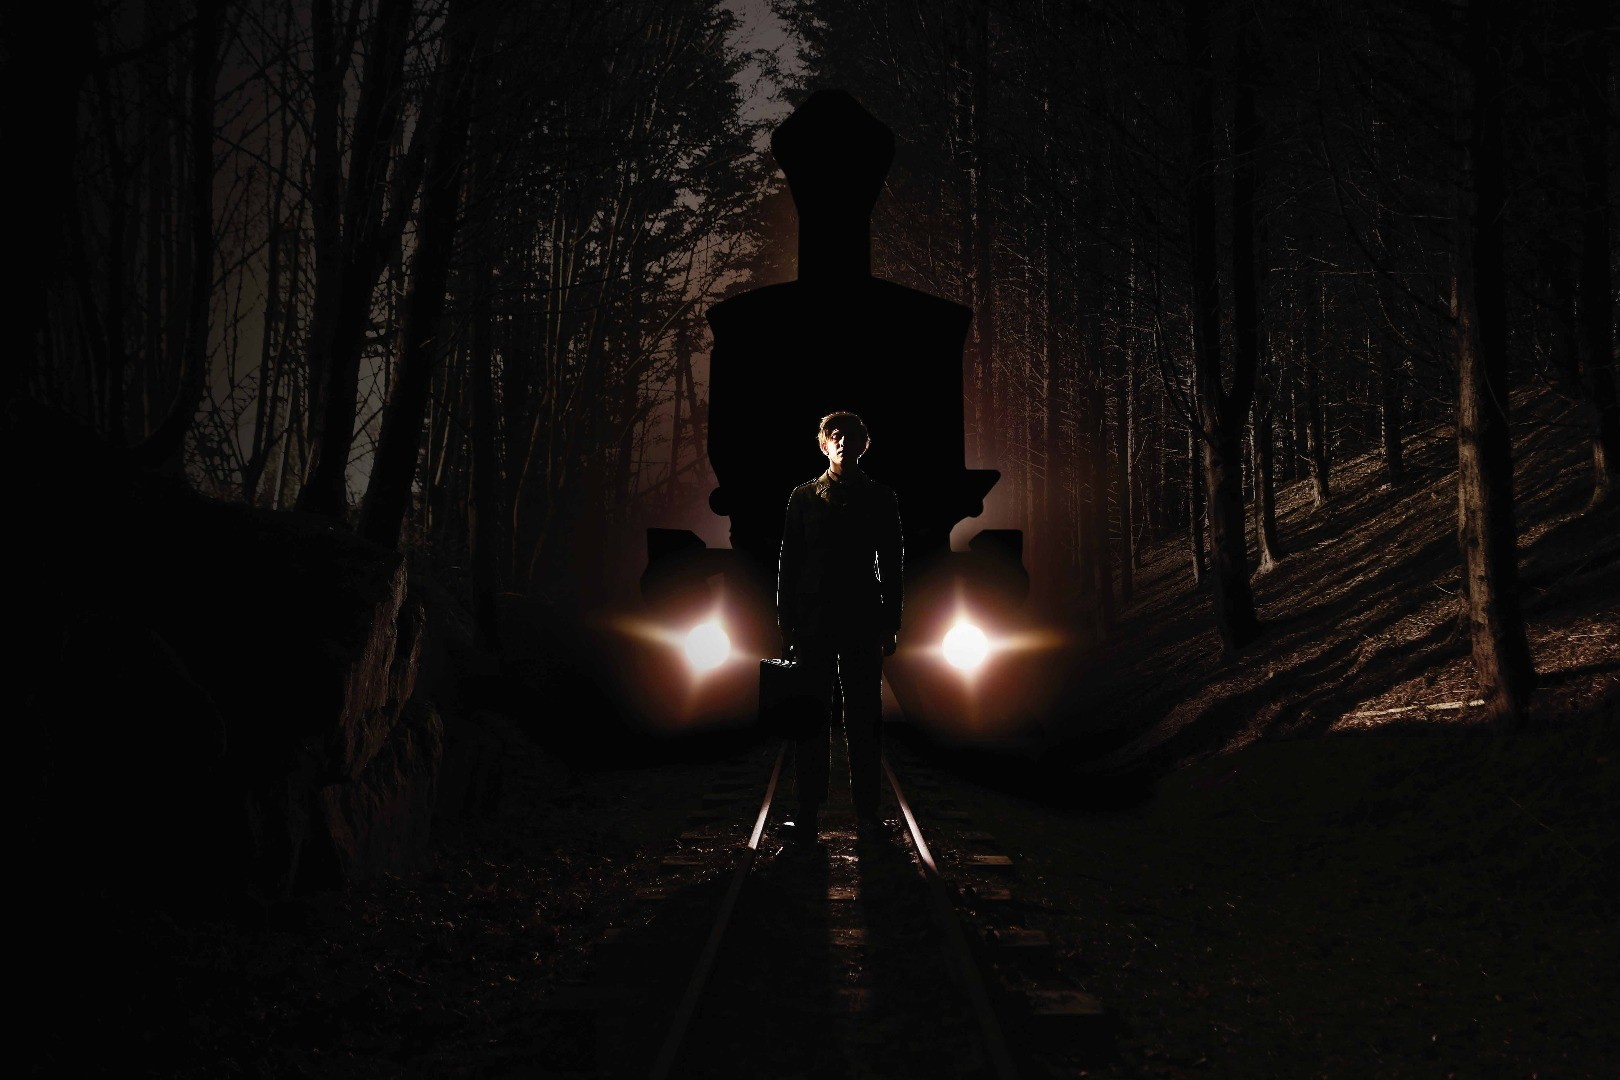 Find out the secrets of Platform 15 at Thorpe Park Fright Nights